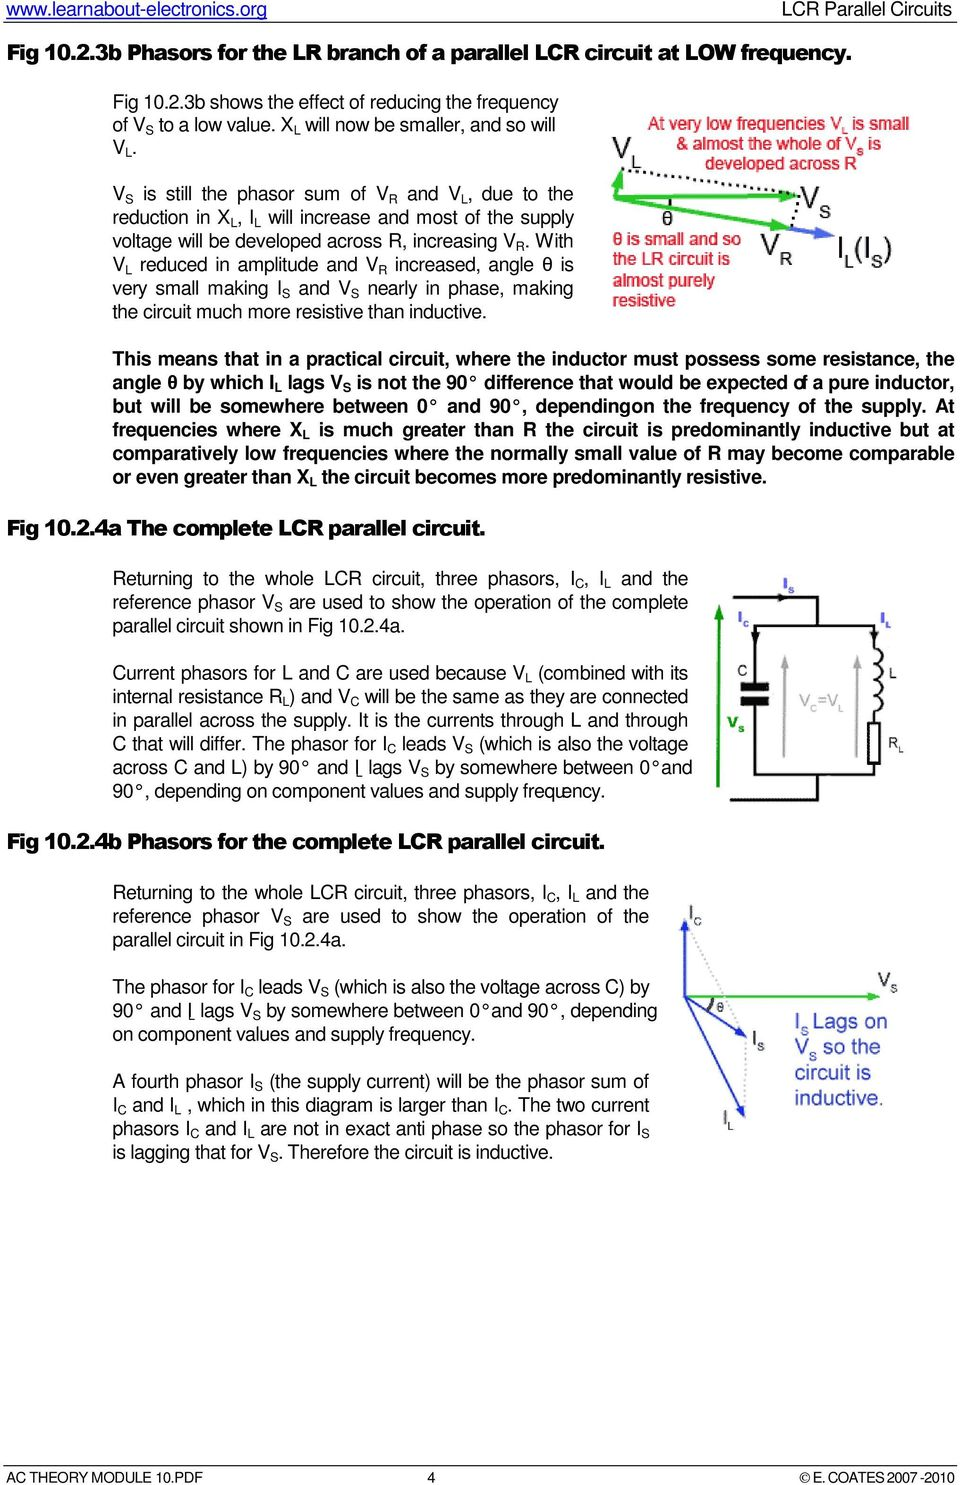 Lcr Parallel Circuits Pdf Currents In Rc And Rl With Increasing Frequency V S Is Still The Phasor Sum Of R L Due To Reduction